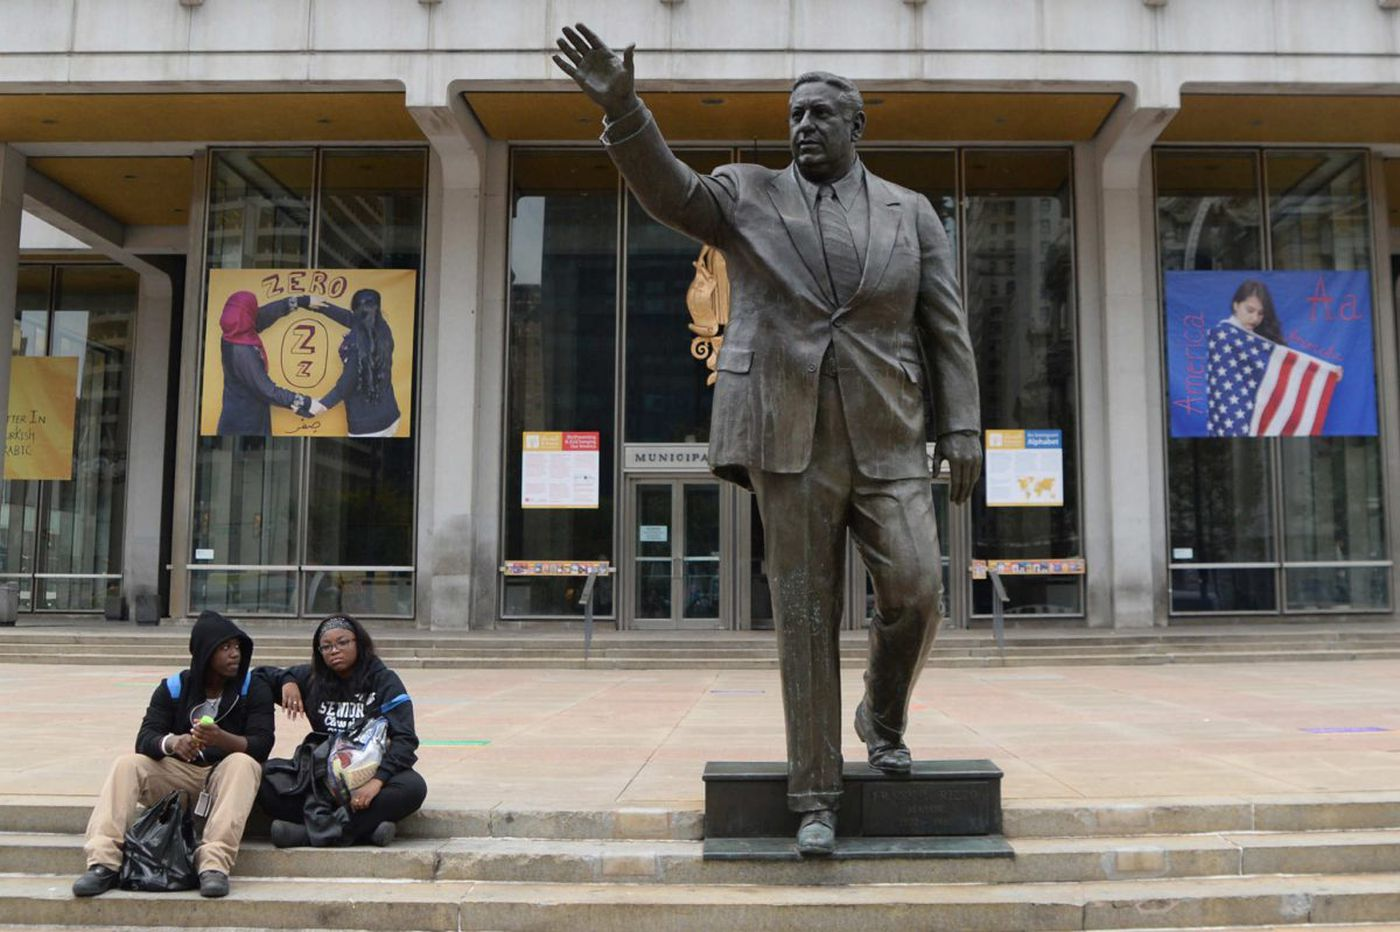 Philly police officer attacks critics of Rizzo statue in foul-mouthed Facebook comments